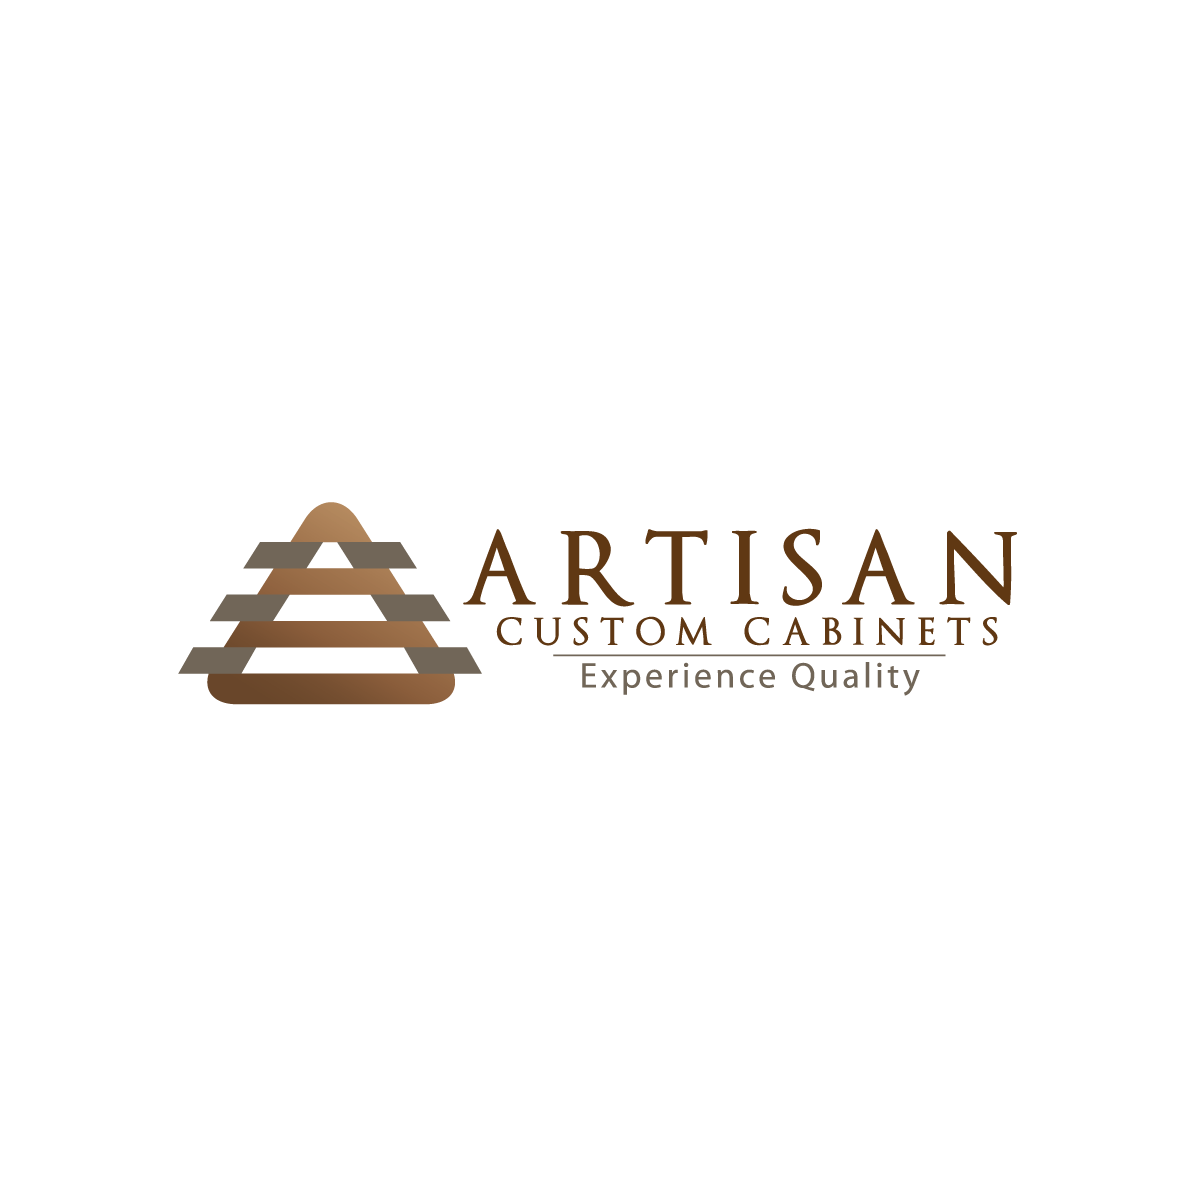 Logo Design by rockin - Entry No. 74 in the Logo Design Contest Creative Logo Design for Artisan Custom Cabinets.